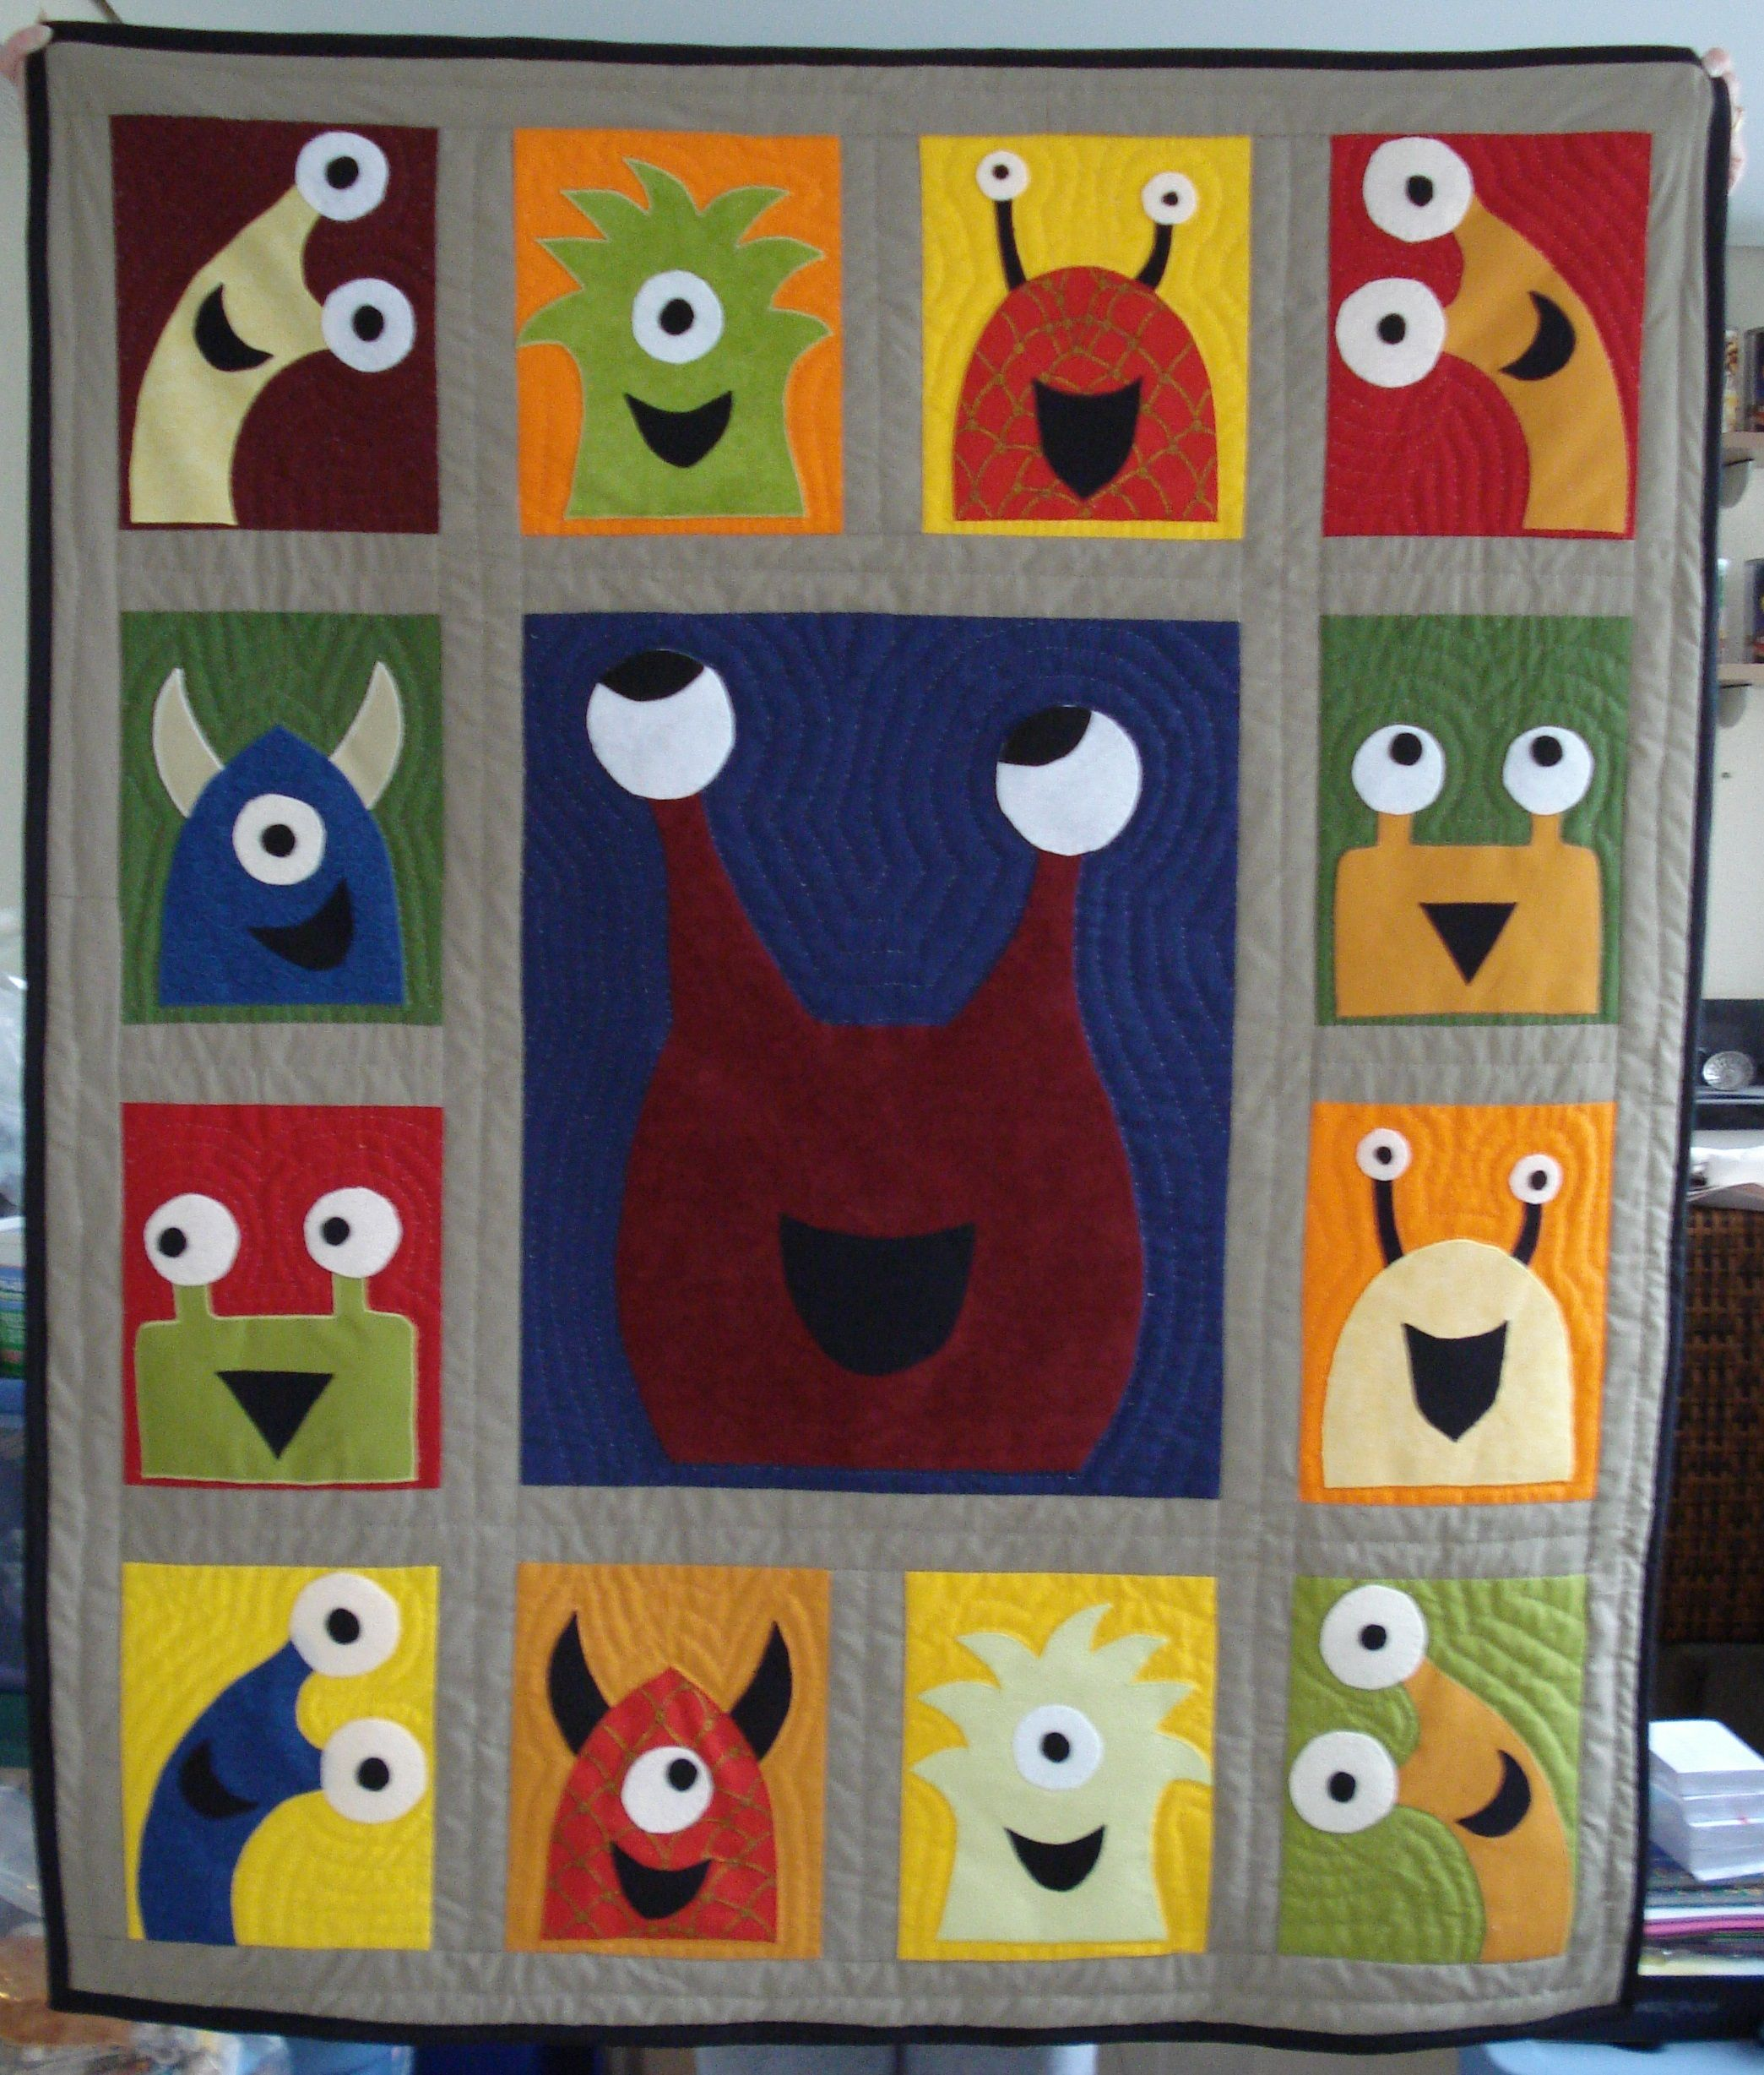 Eek Monster Quilt I Want To Make A Monster Quilt For My Grandson